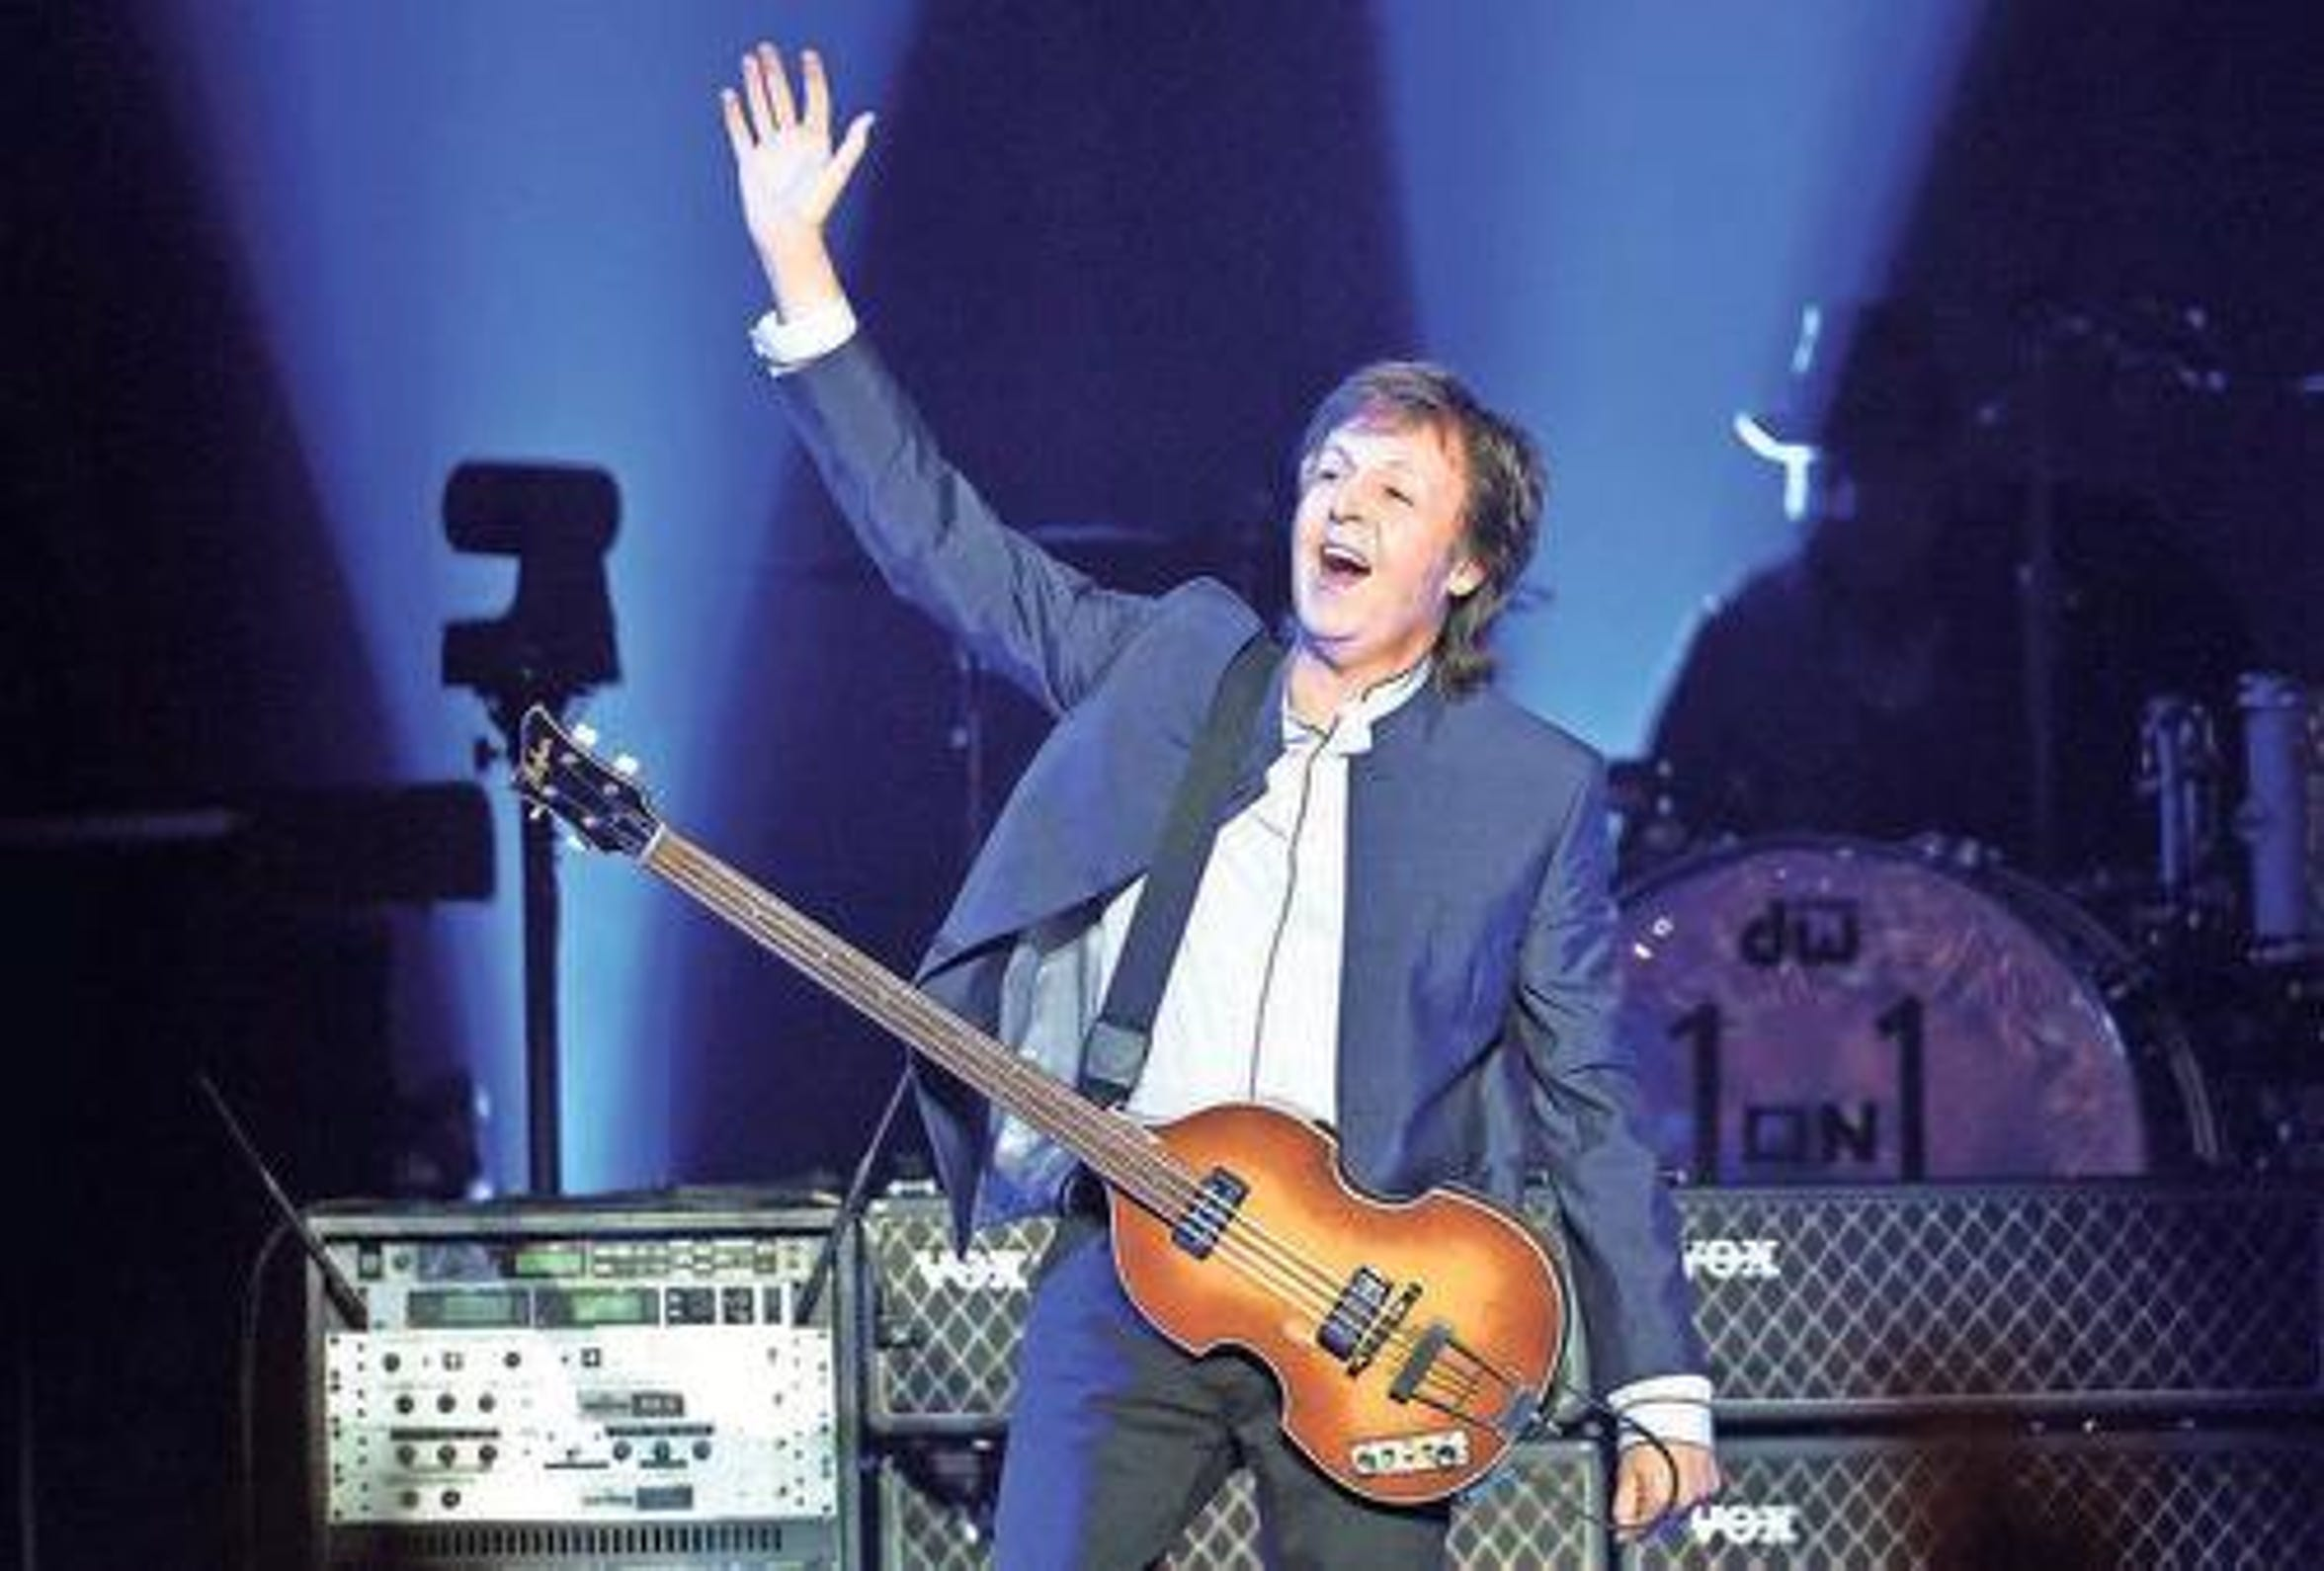 Paul McCartney's visit to Lambeau Field is one of the biggest concert events of the Wisconsin summer.